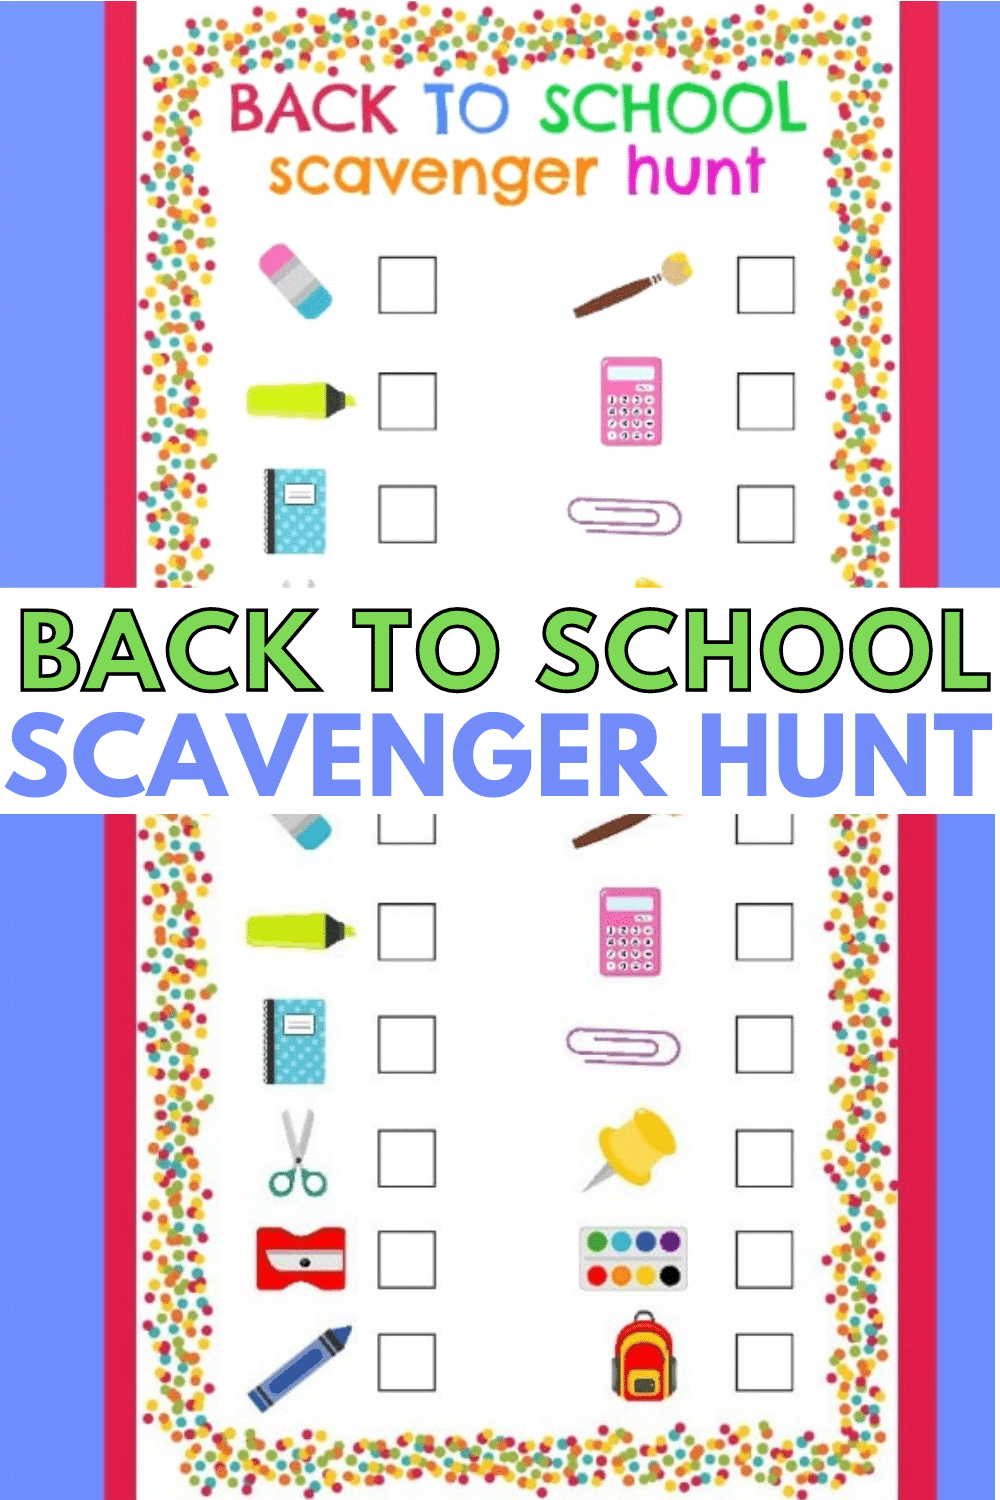 A back to school scavenger hunt is a fun way to get kids excited about a new school year. This free printable scavenger hunt is a colorful and easy game. #scavengerhunt #printable #forkids #backtoschool via @wondermomwannab